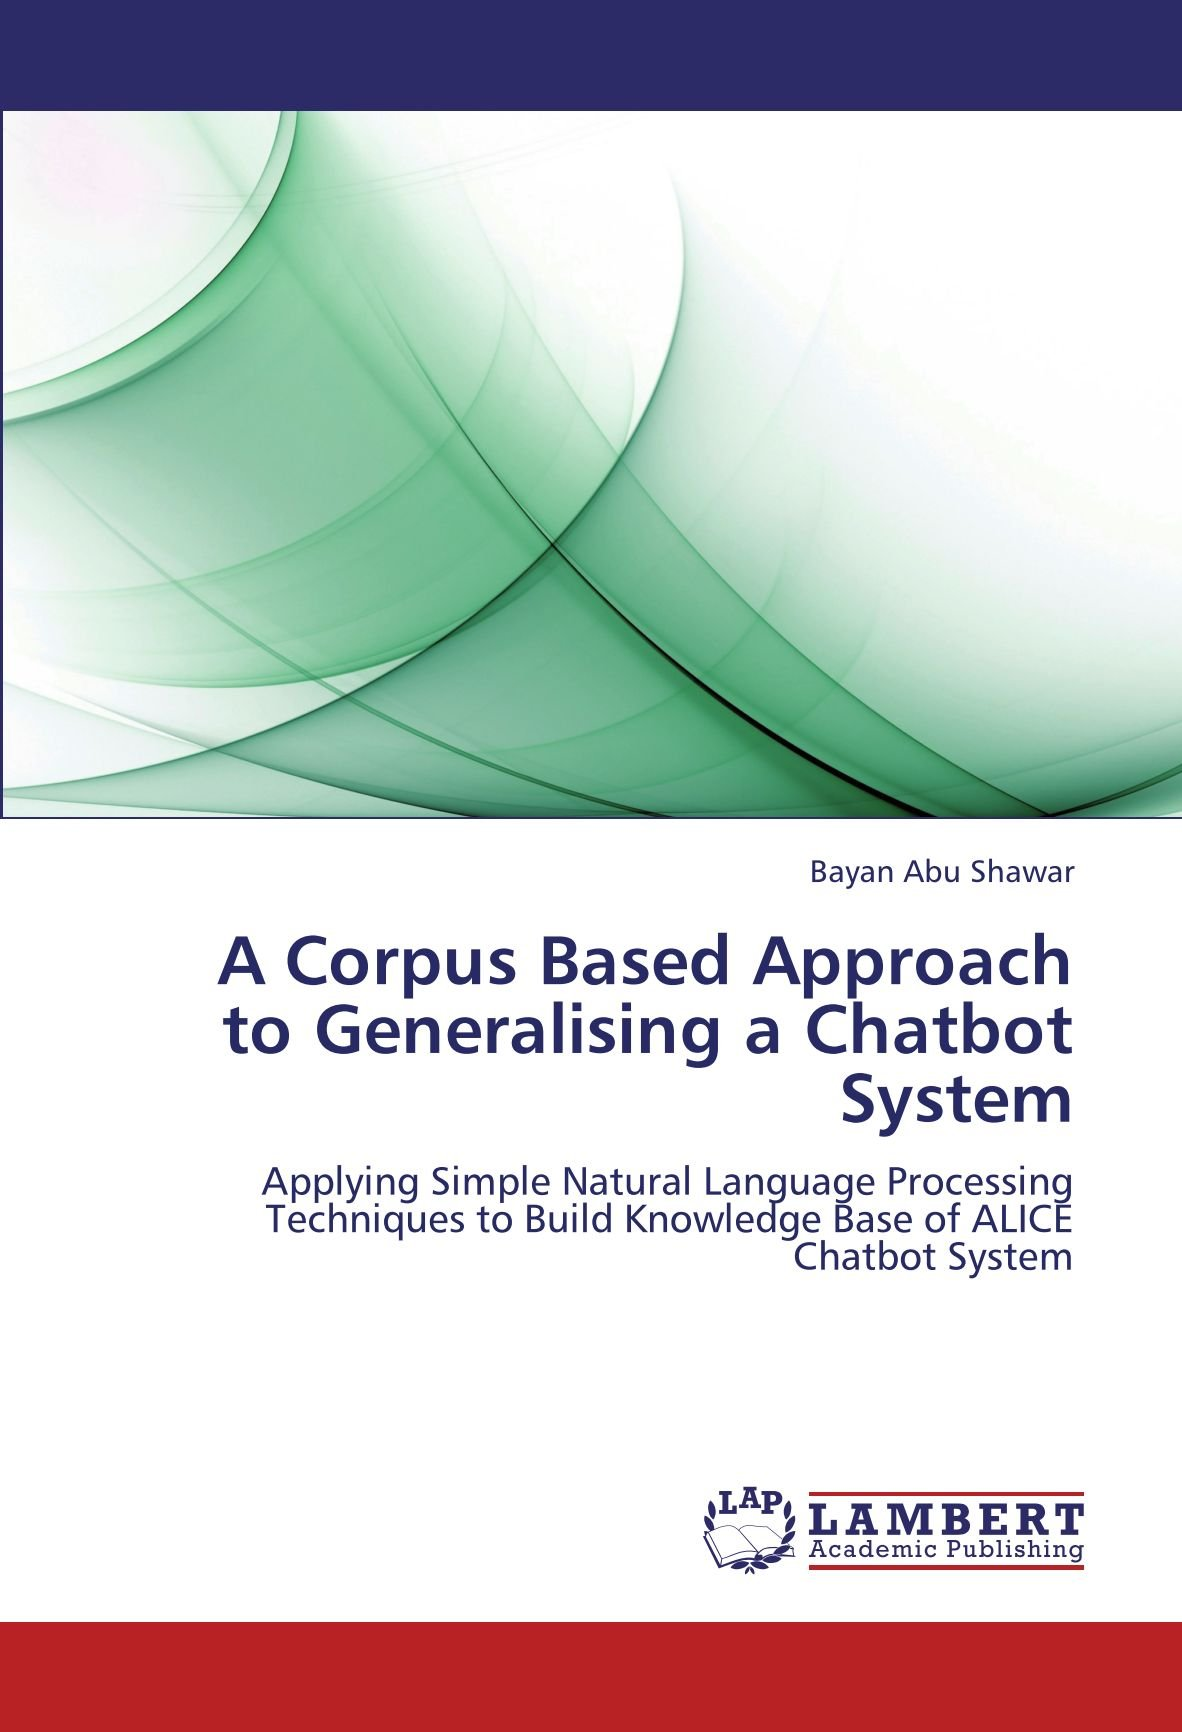 A Corpus Based Approach to Generalising a Chatbot System: Applying